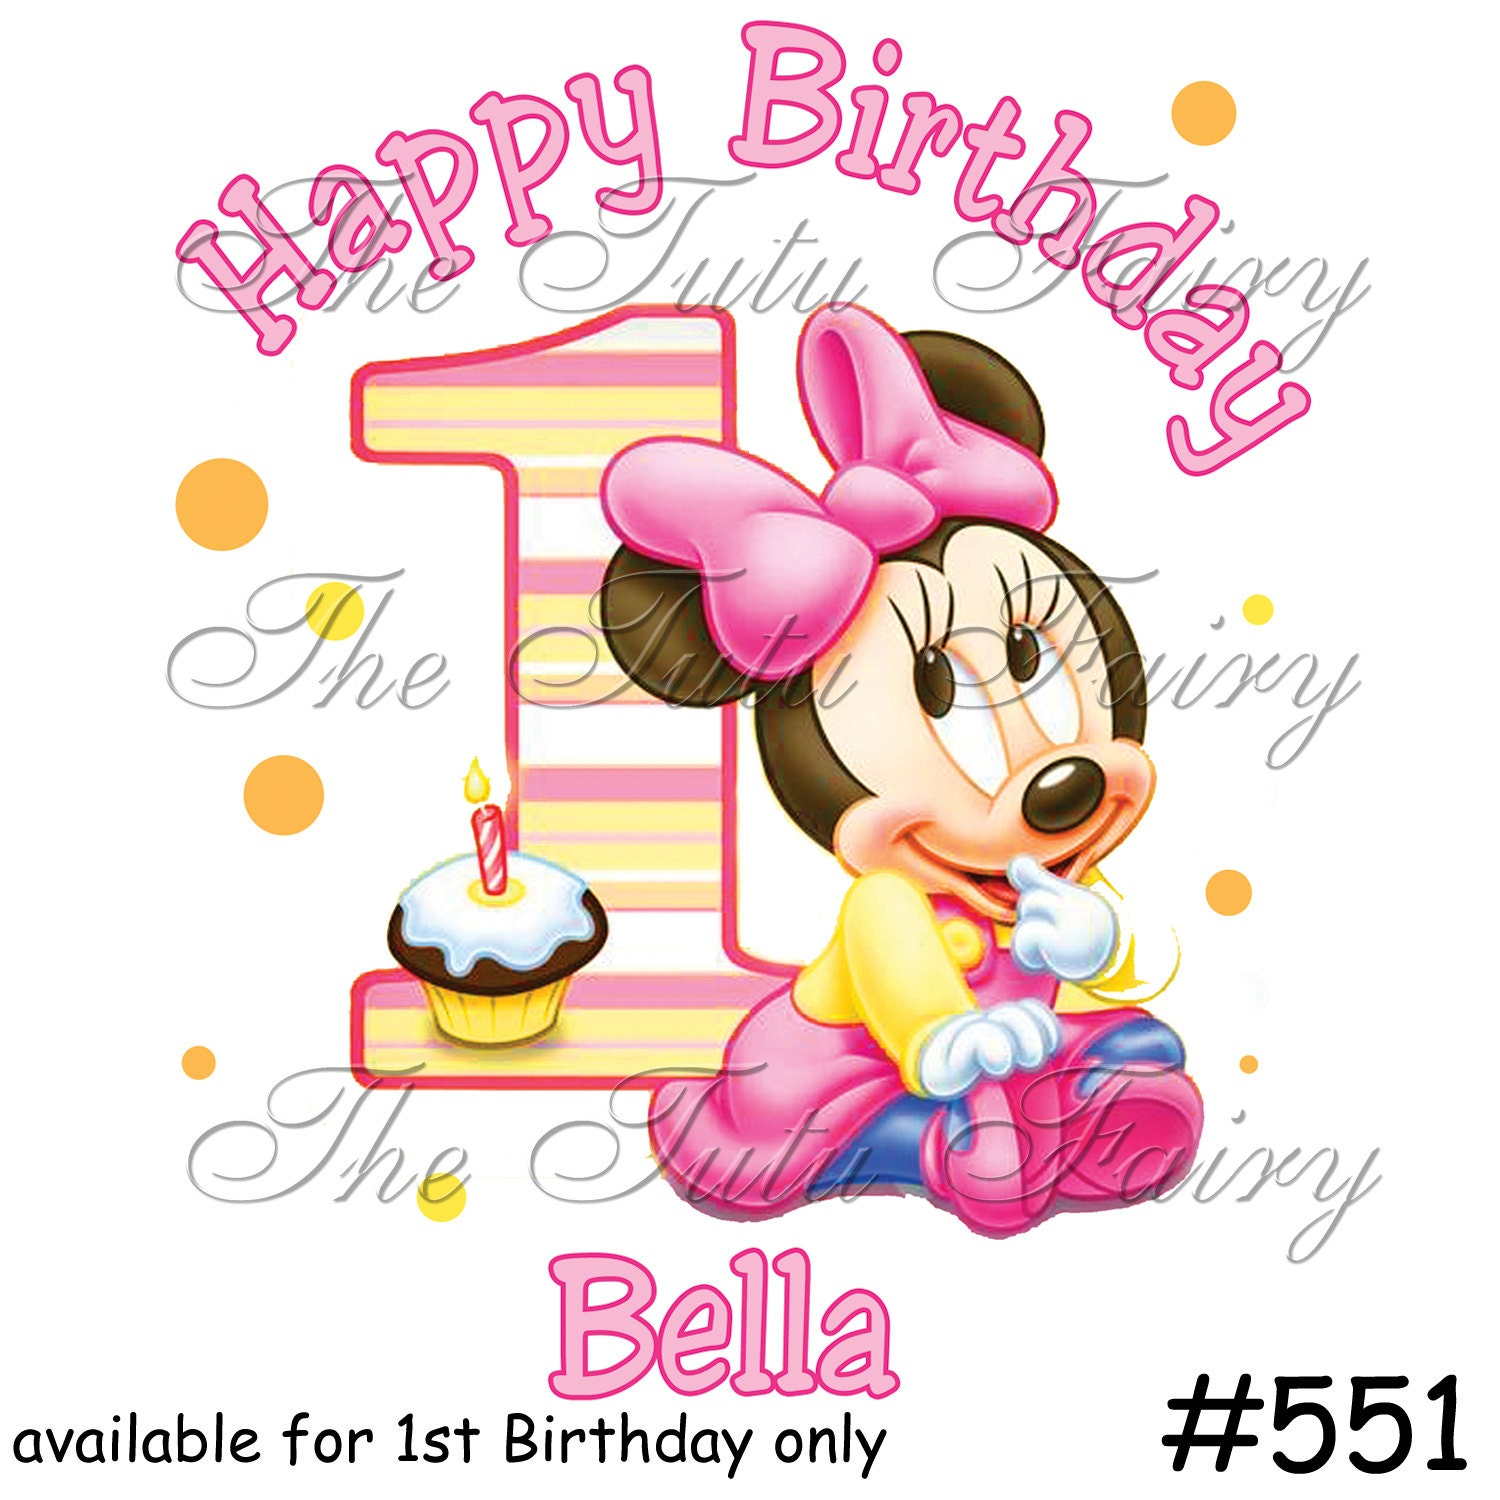 Baby Minnie Mouse 1st Birthday Images Baby Minnie Mouse 1st Birthday